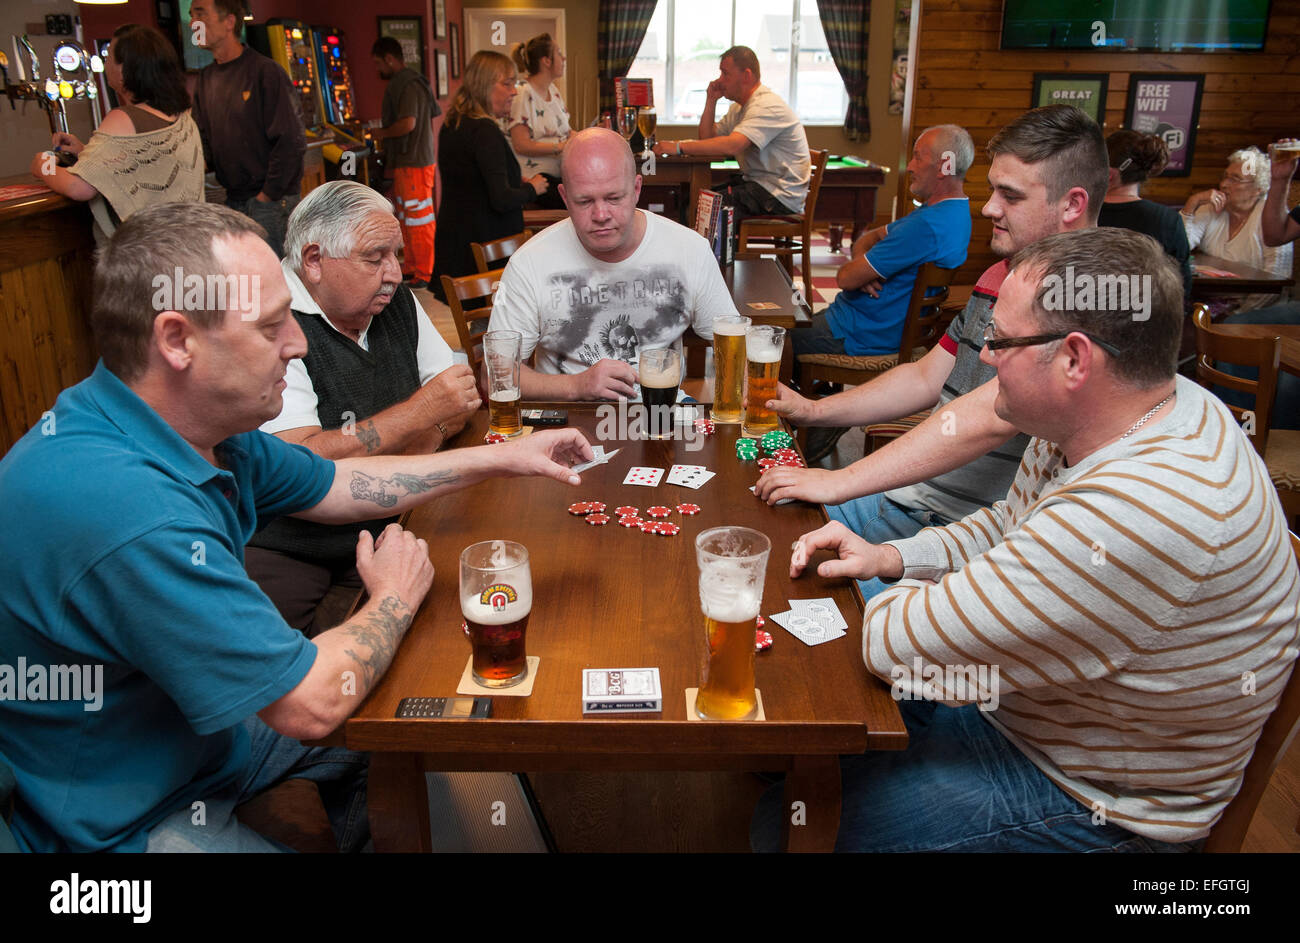 Five men play cards sat around a table in a pub in the North of England while having a drink of beer. - Stock Image